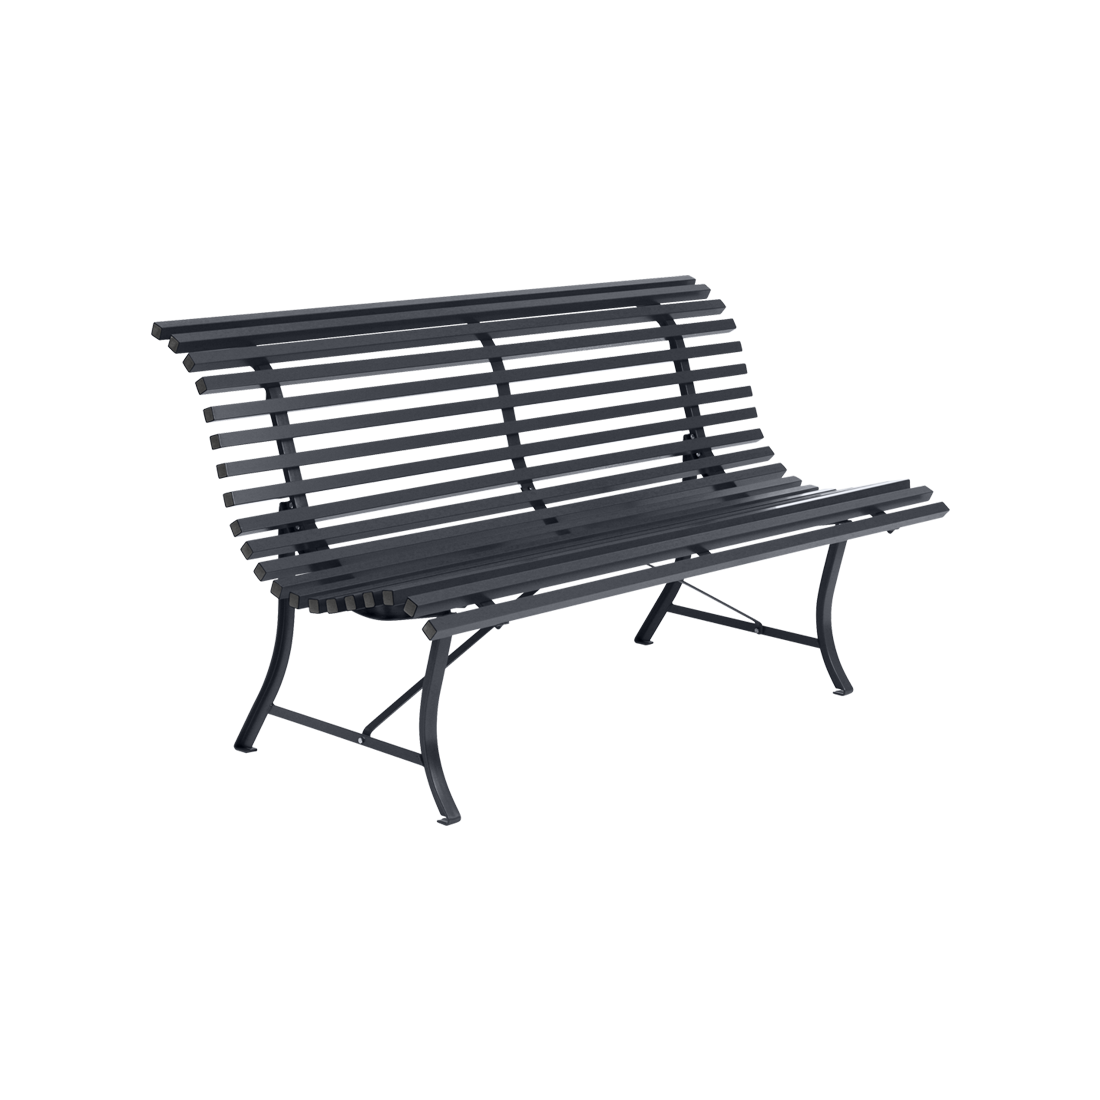 FERMOB Louisiane 3-4 Seater Garden Bench (2 Sizes)